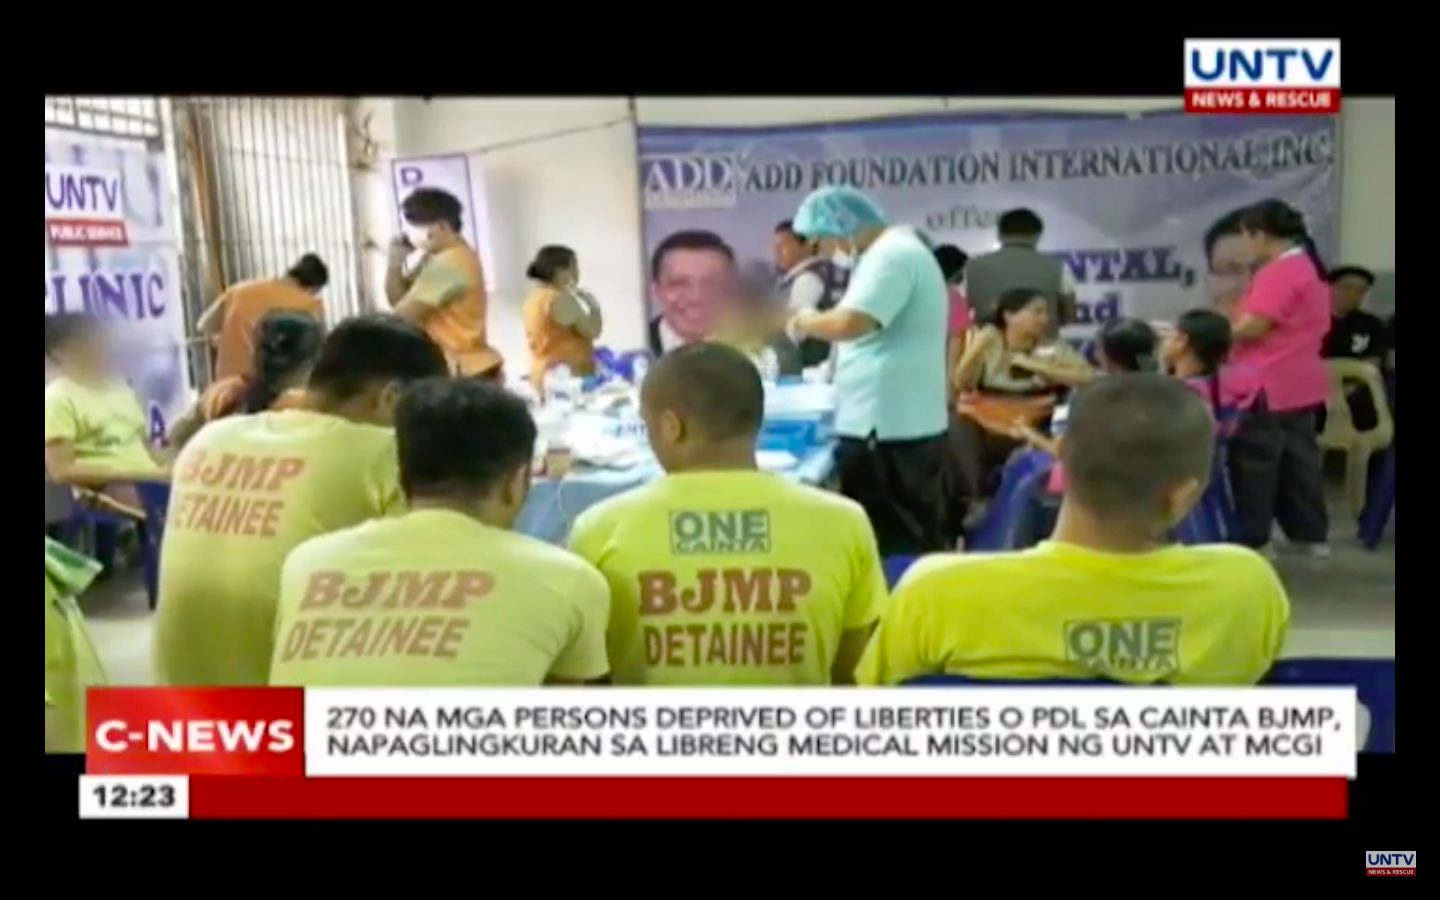 MCGI and UNTV Provide Free Health Services for Persons Deprived of Liberties (PDL) in BJMP, Cainta